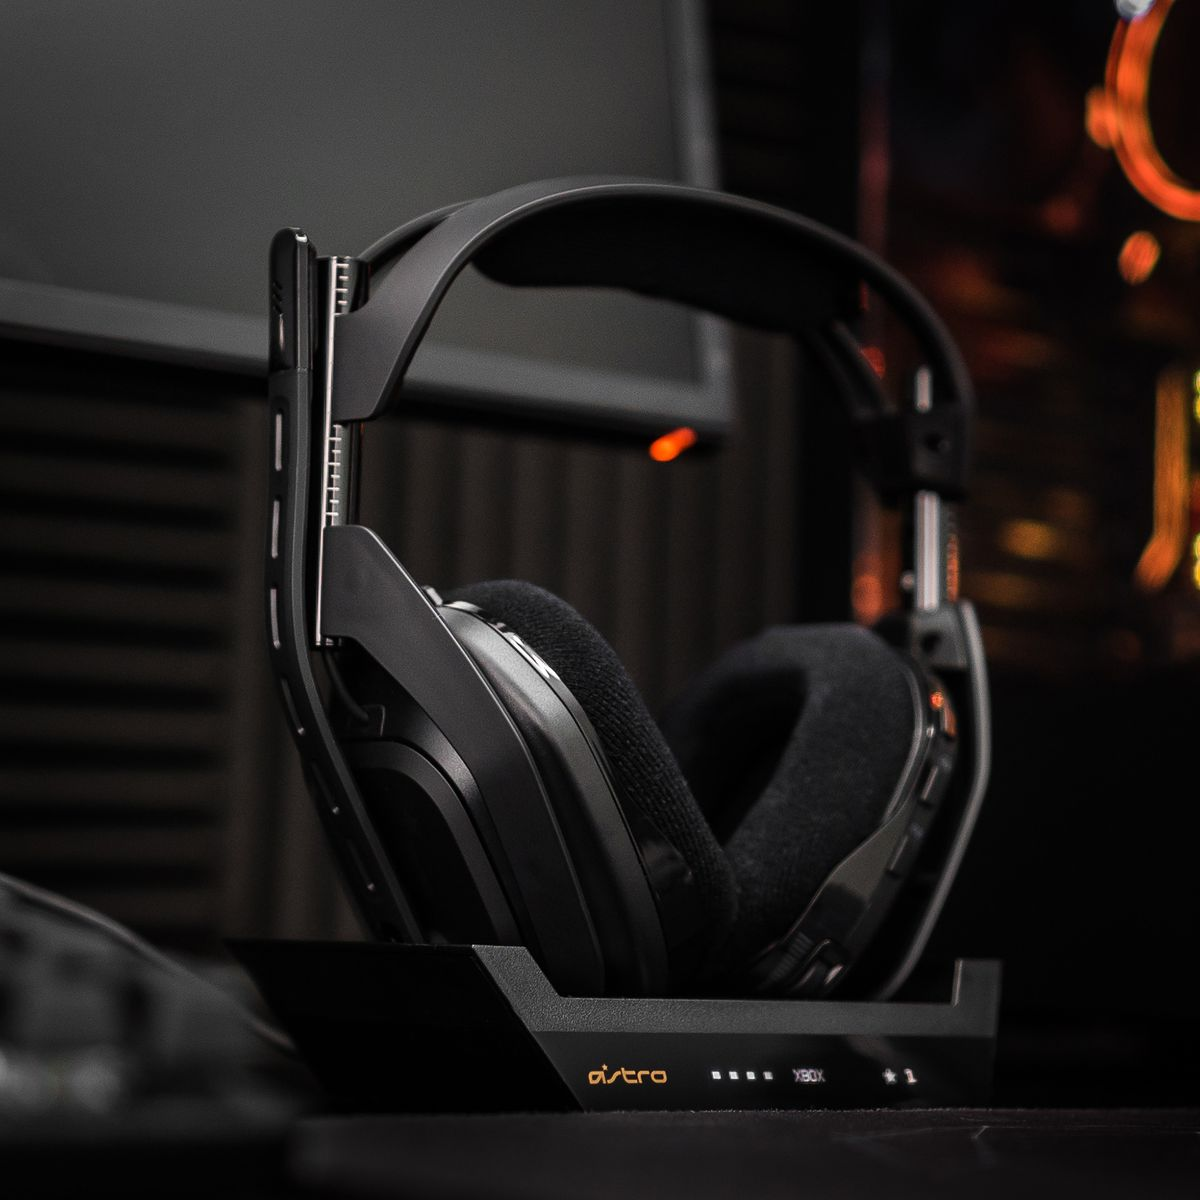 The Astro A50 for Xbox and PC shown here in its charging cradle.